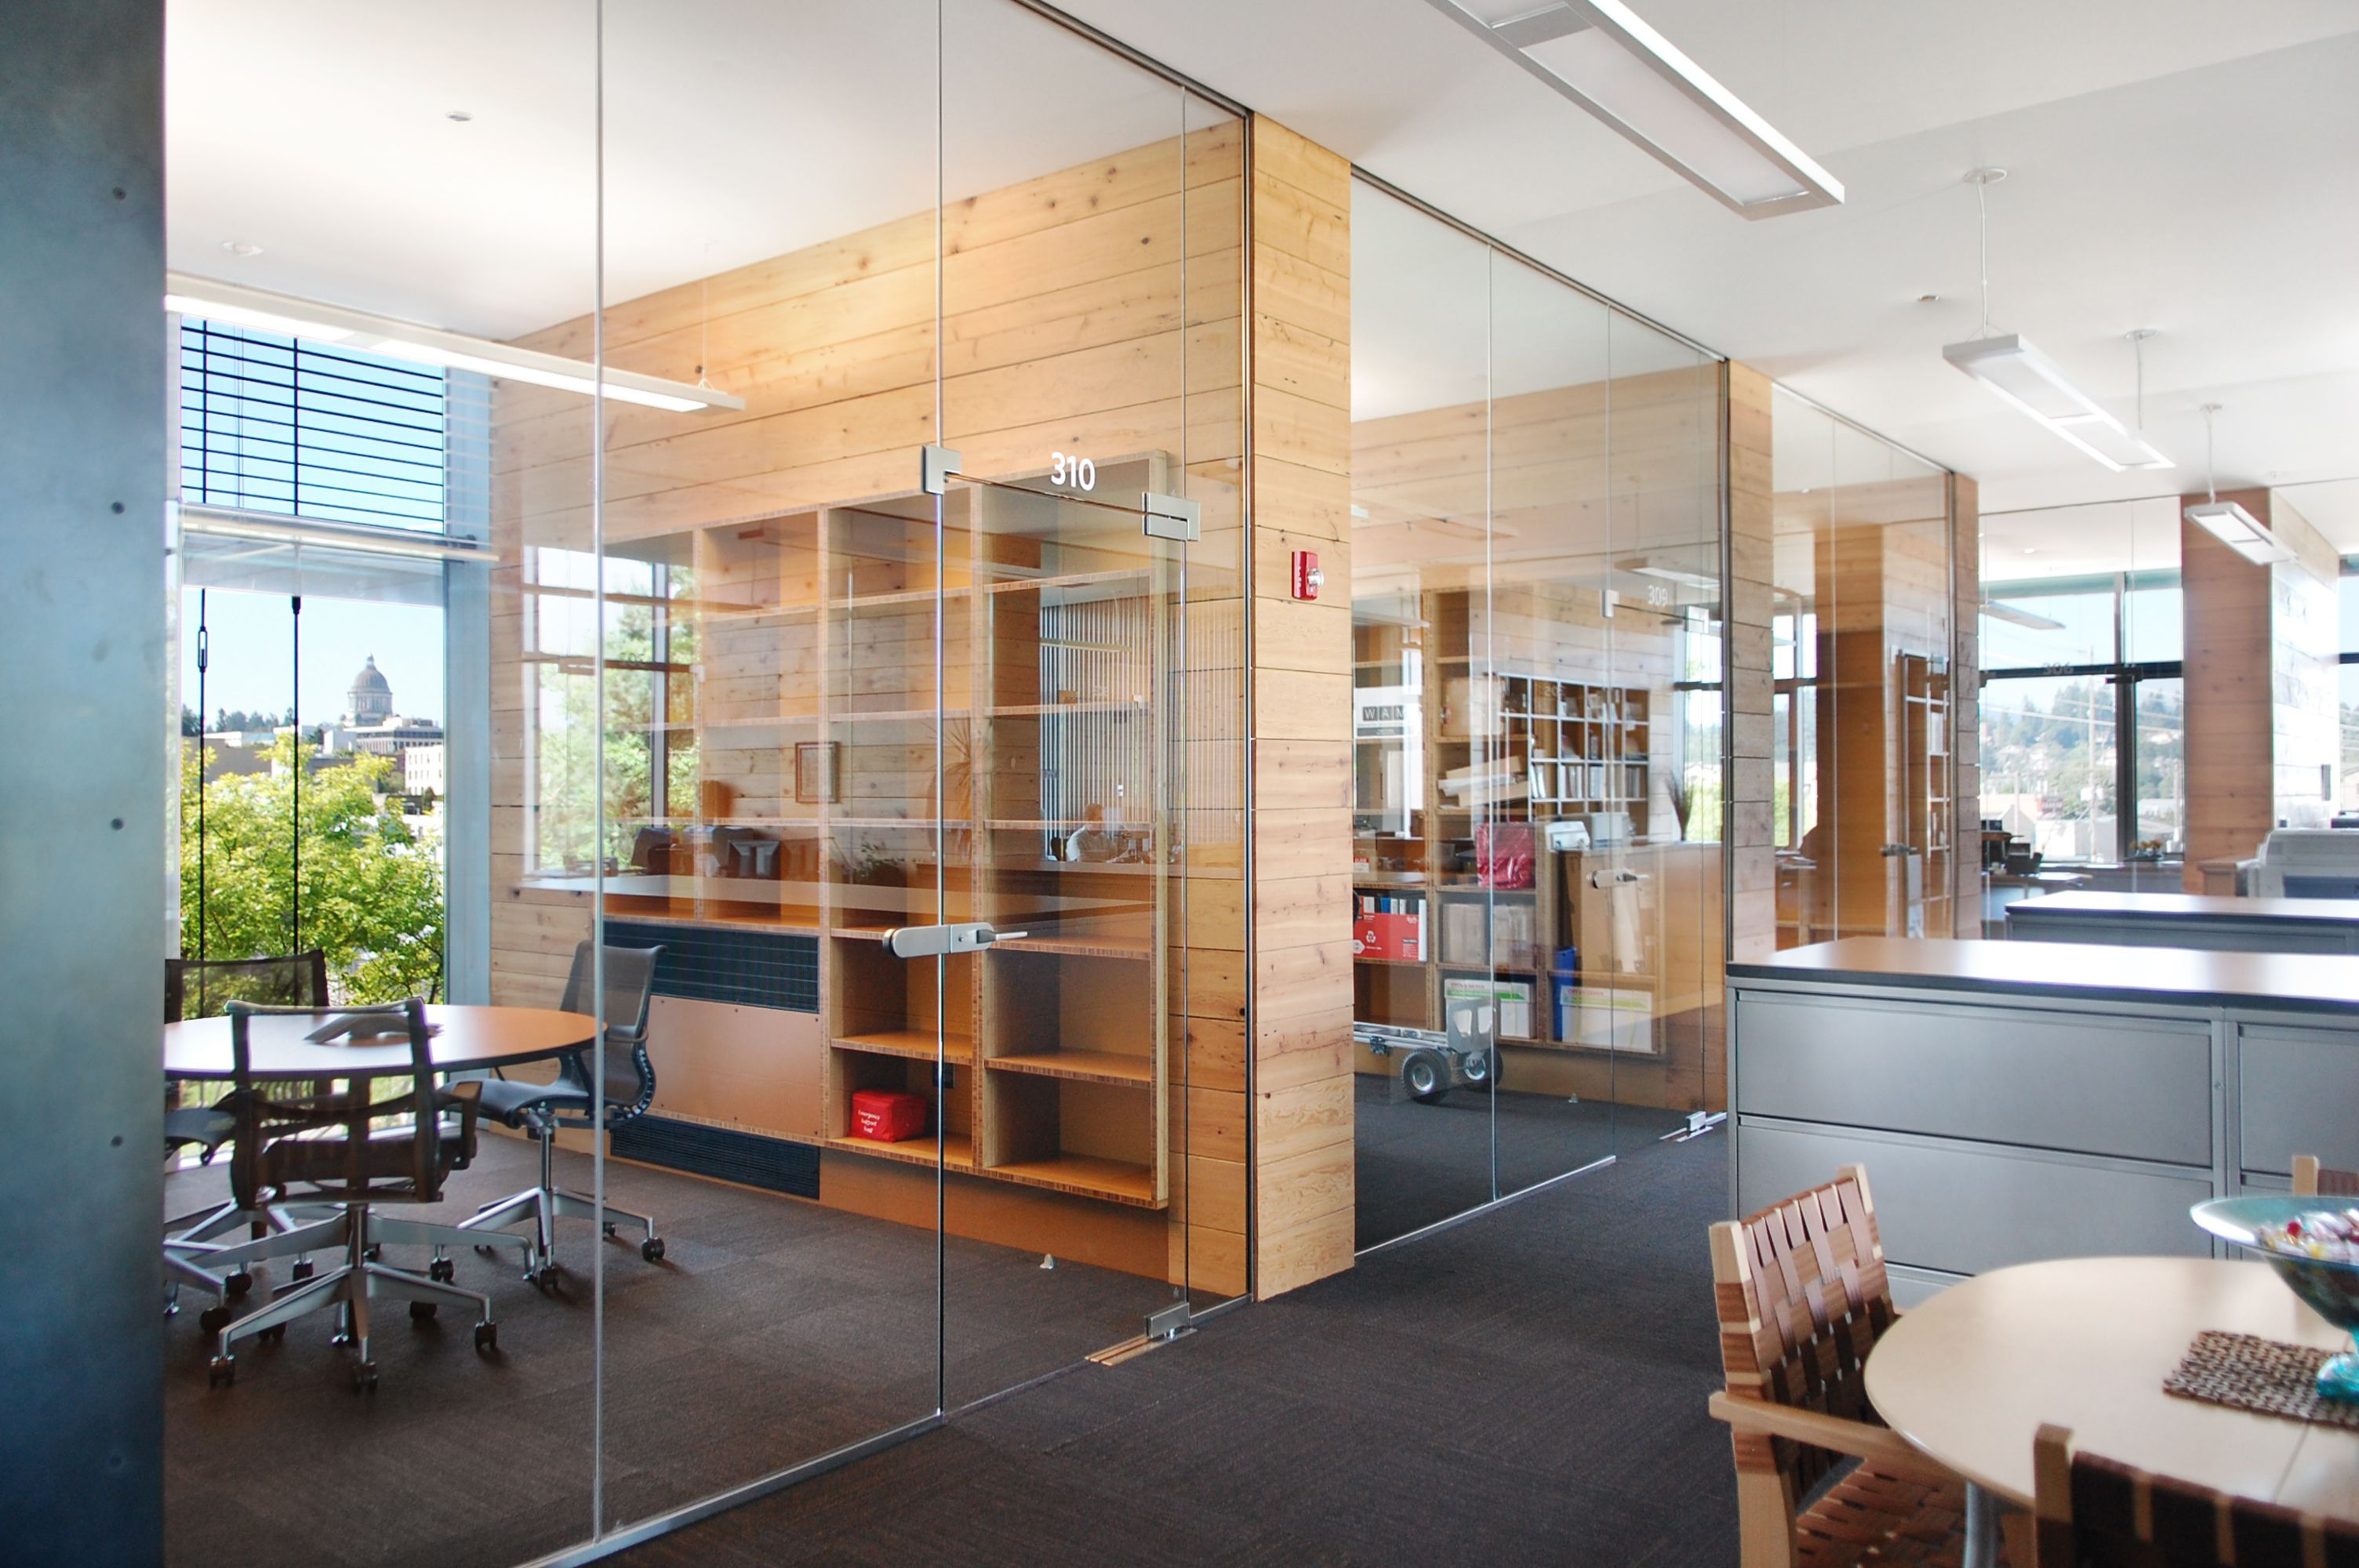 Pin By Ben Pell On Eugenecityhall Flexible Space Interior Work